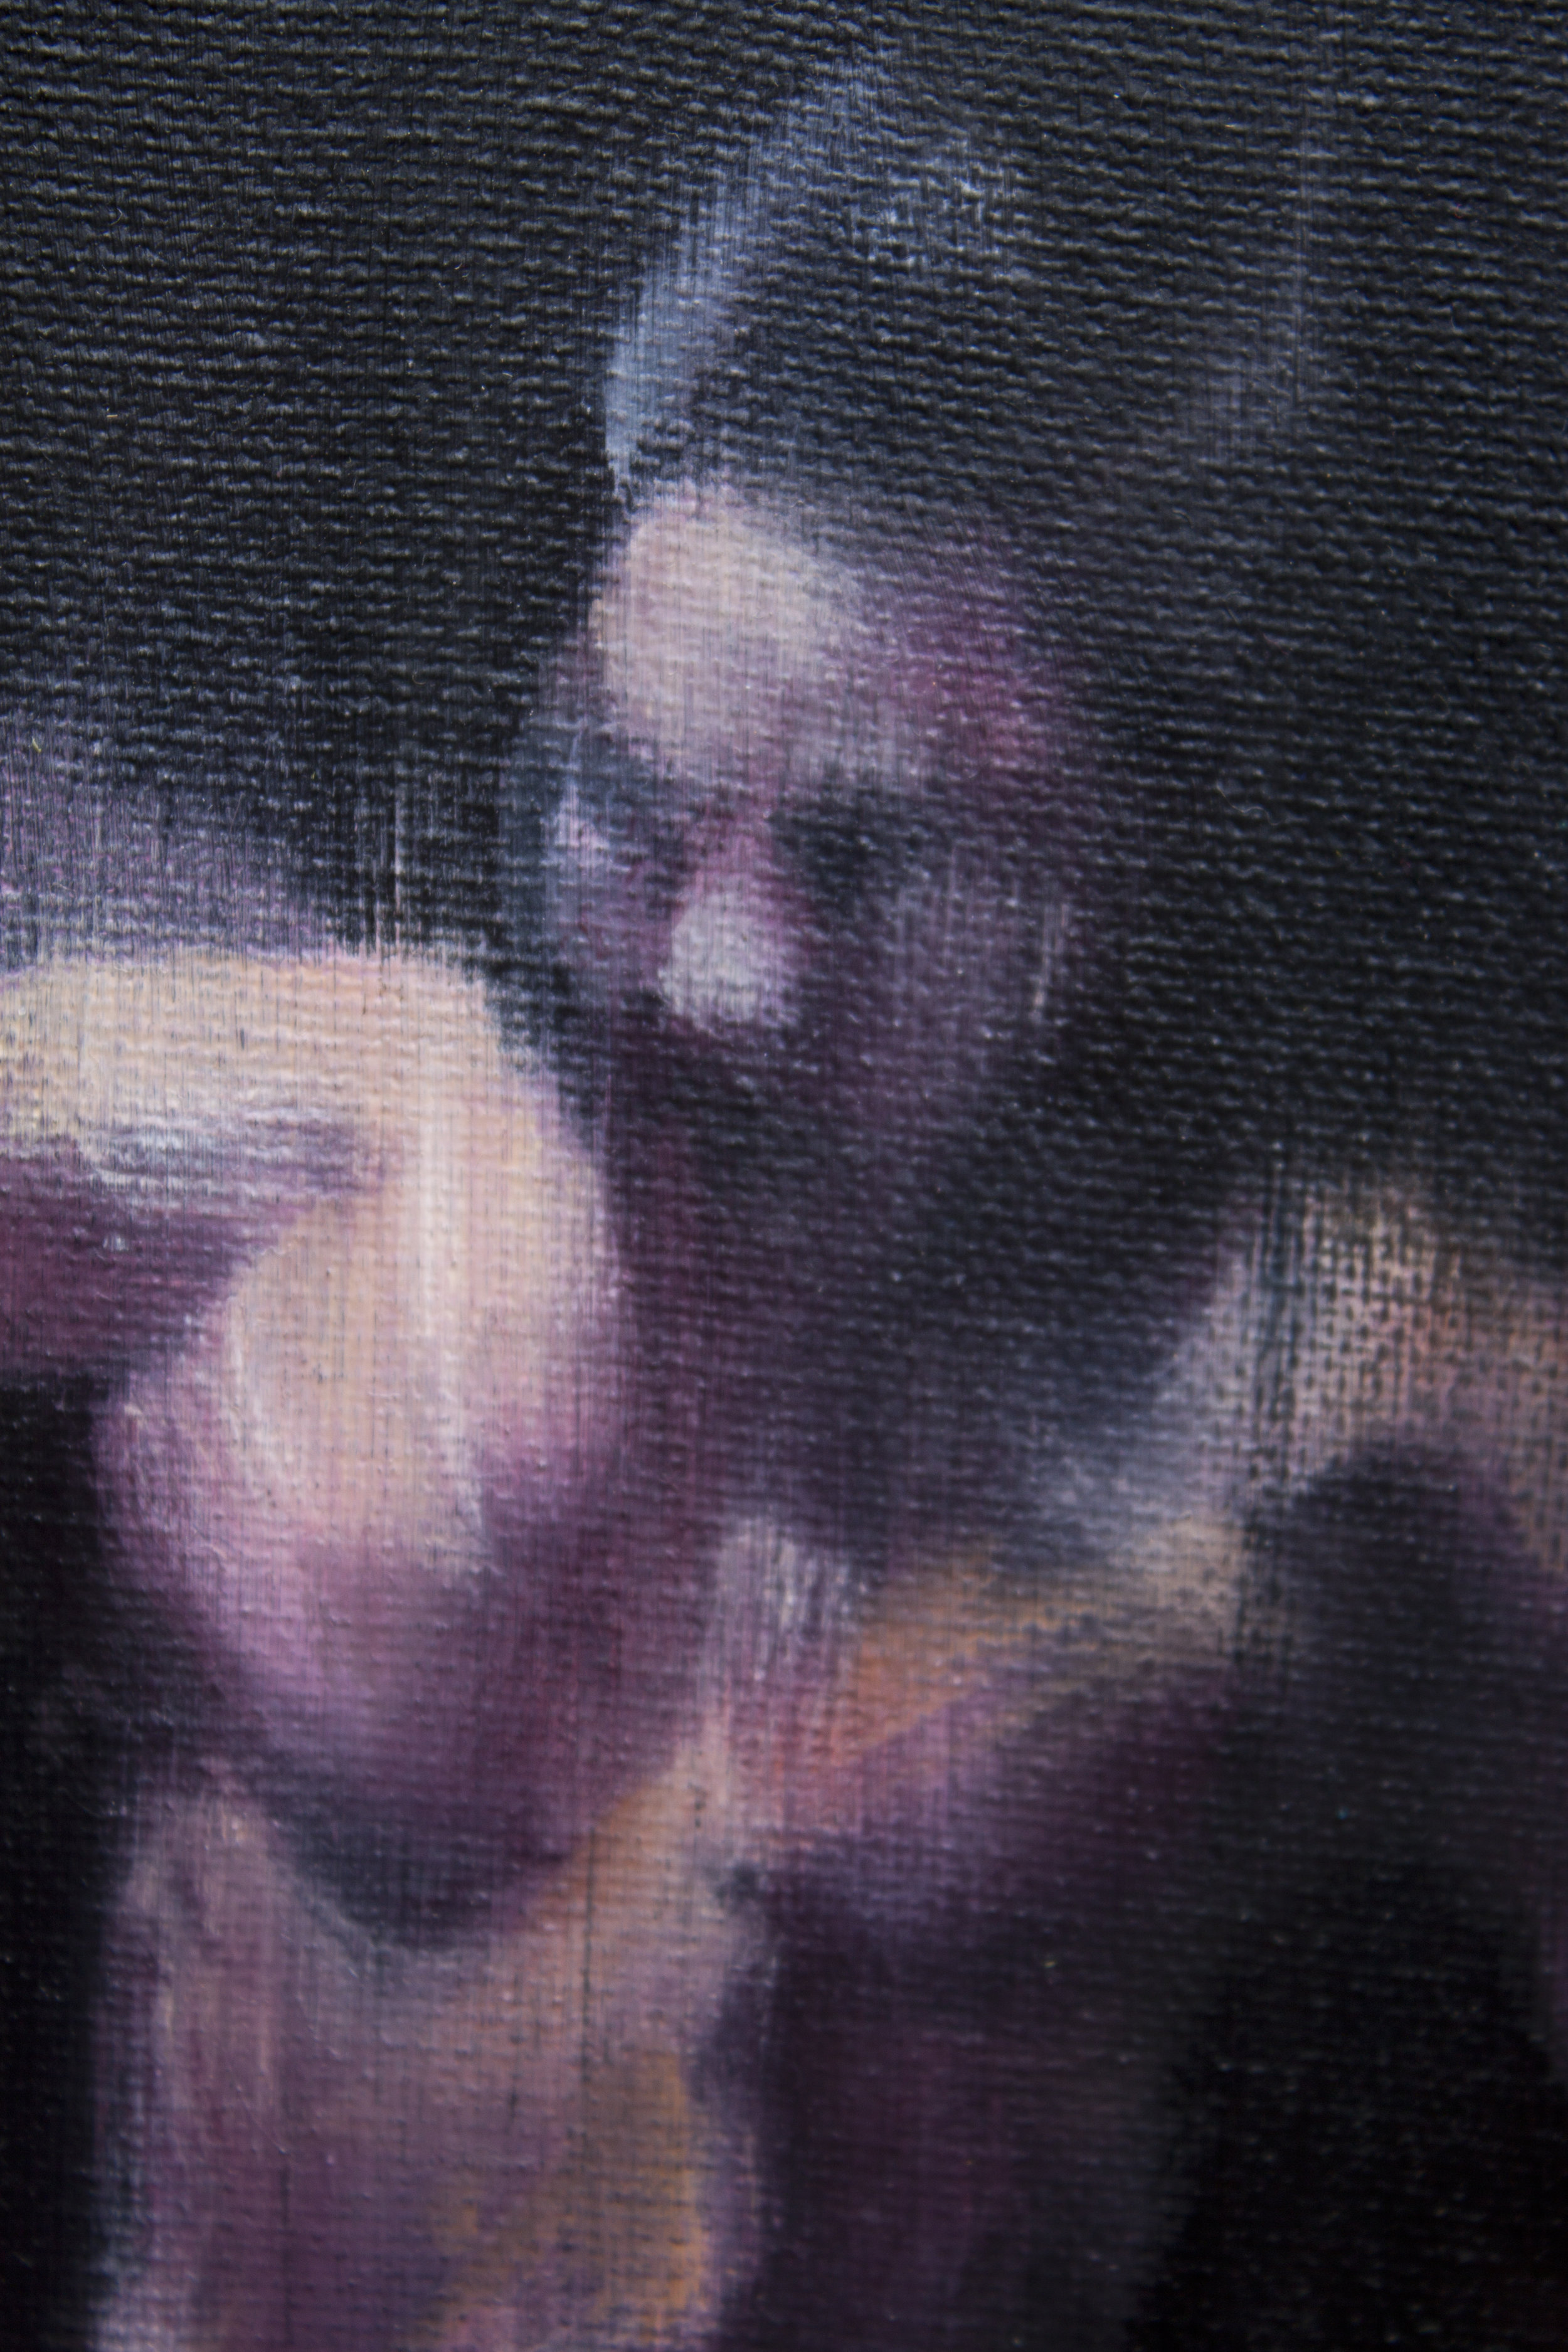 The Void (detail)